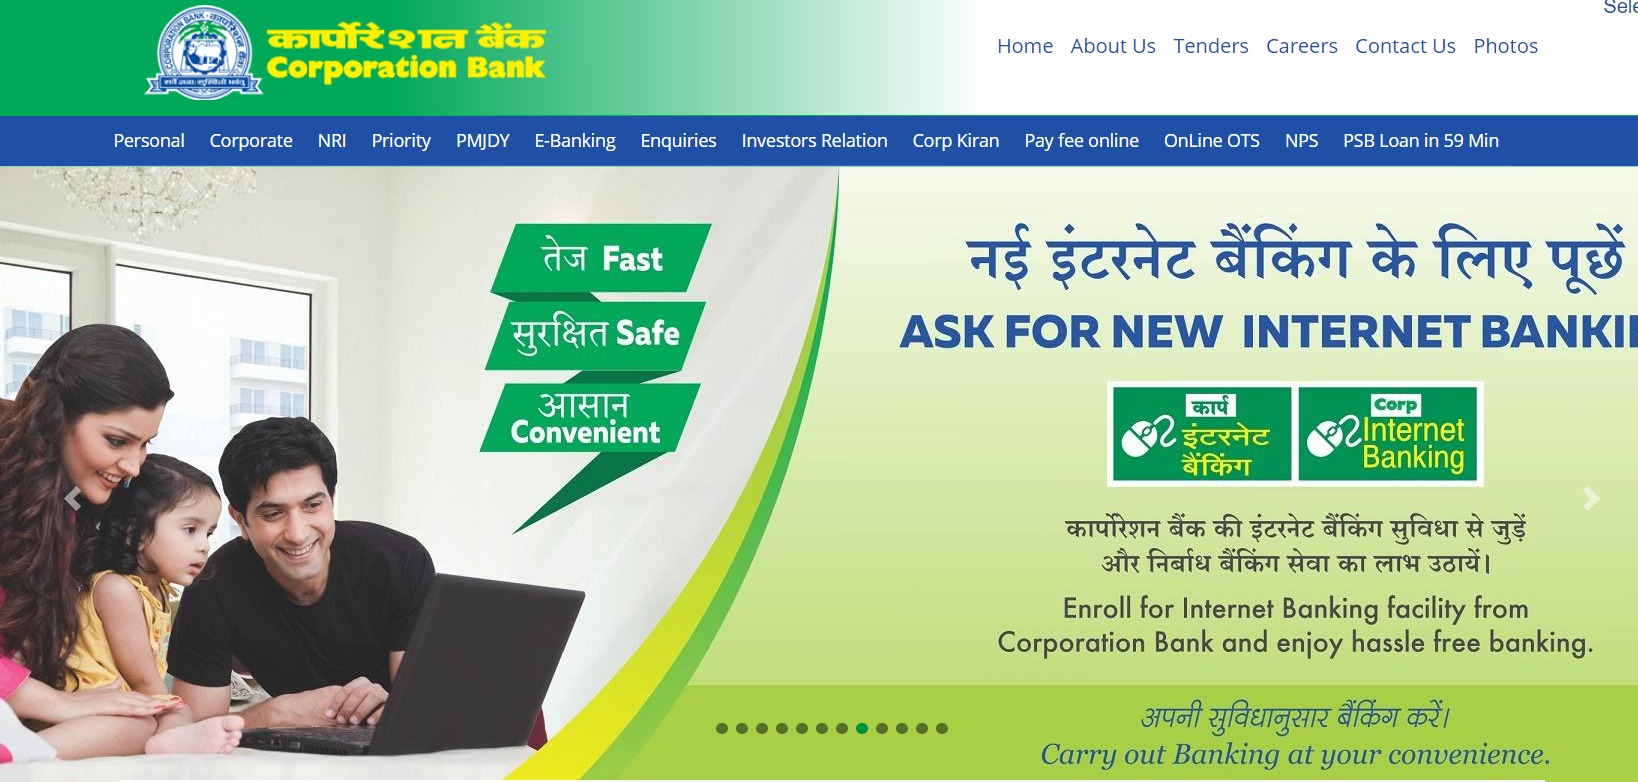 Corporation Bank Net Banking Online – How To Register & Activate Account? – Corporation Bank 1